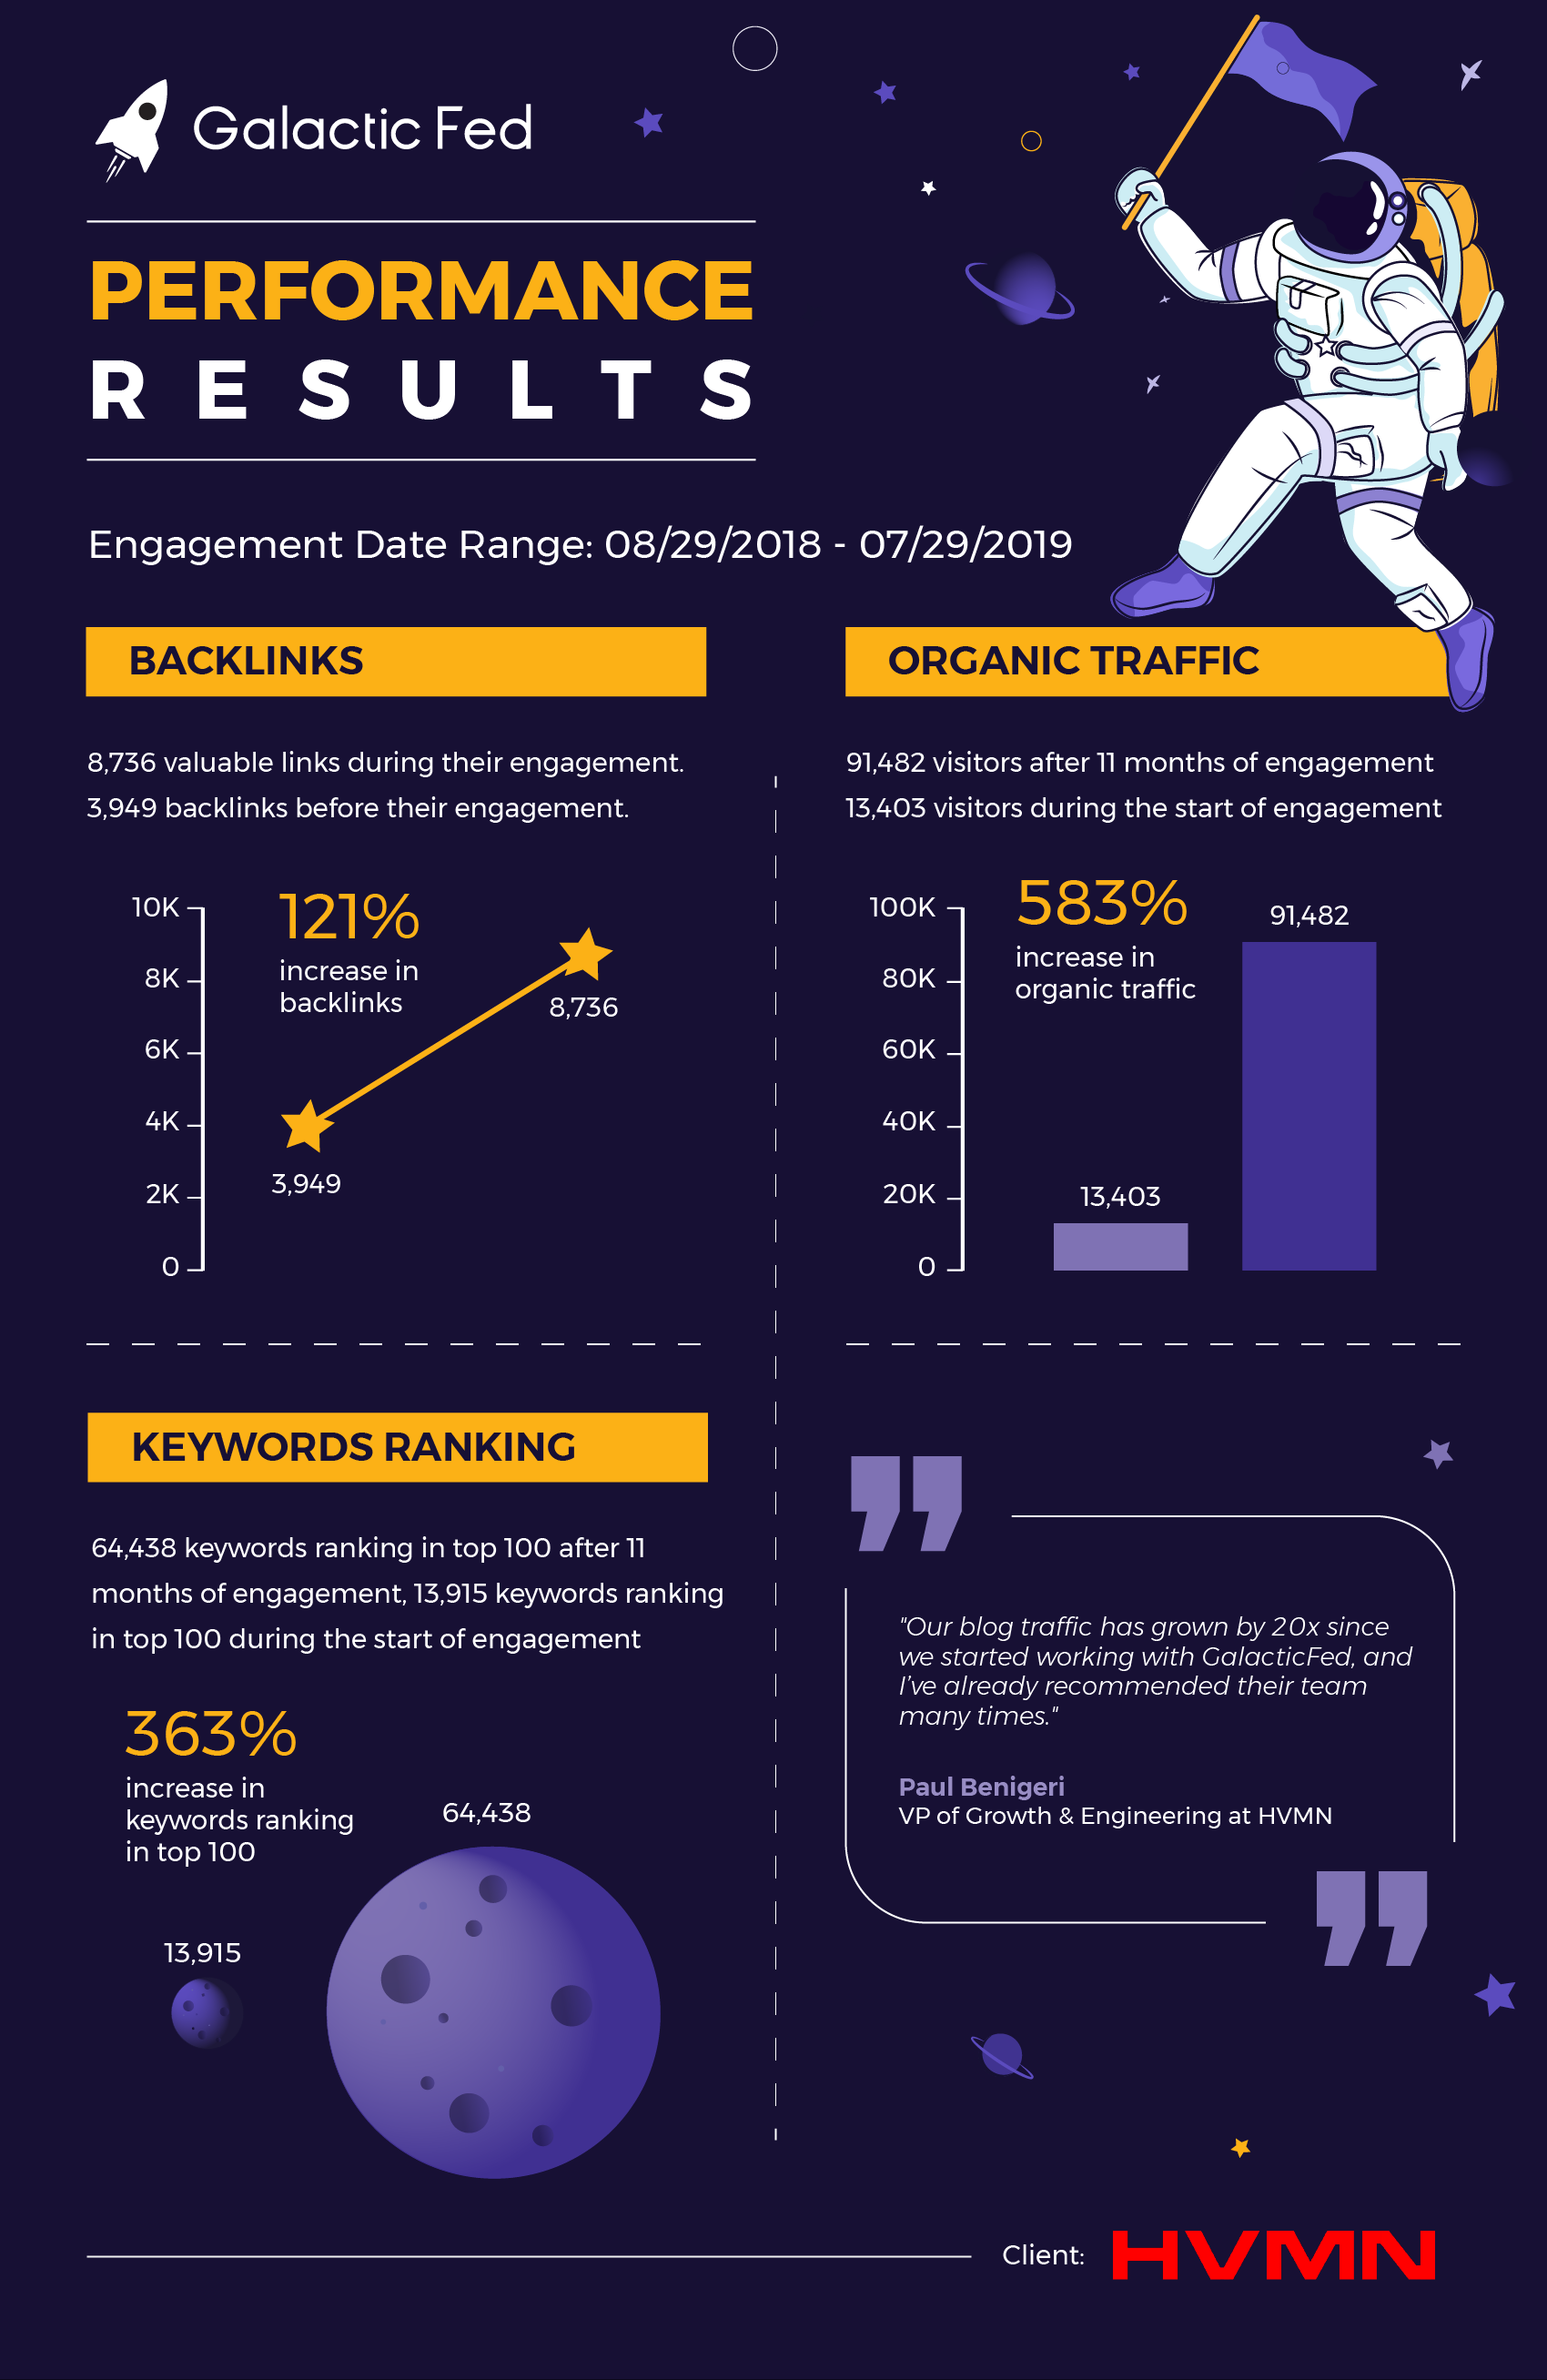 HVMN Infographic of the Galactic Fed performance results.